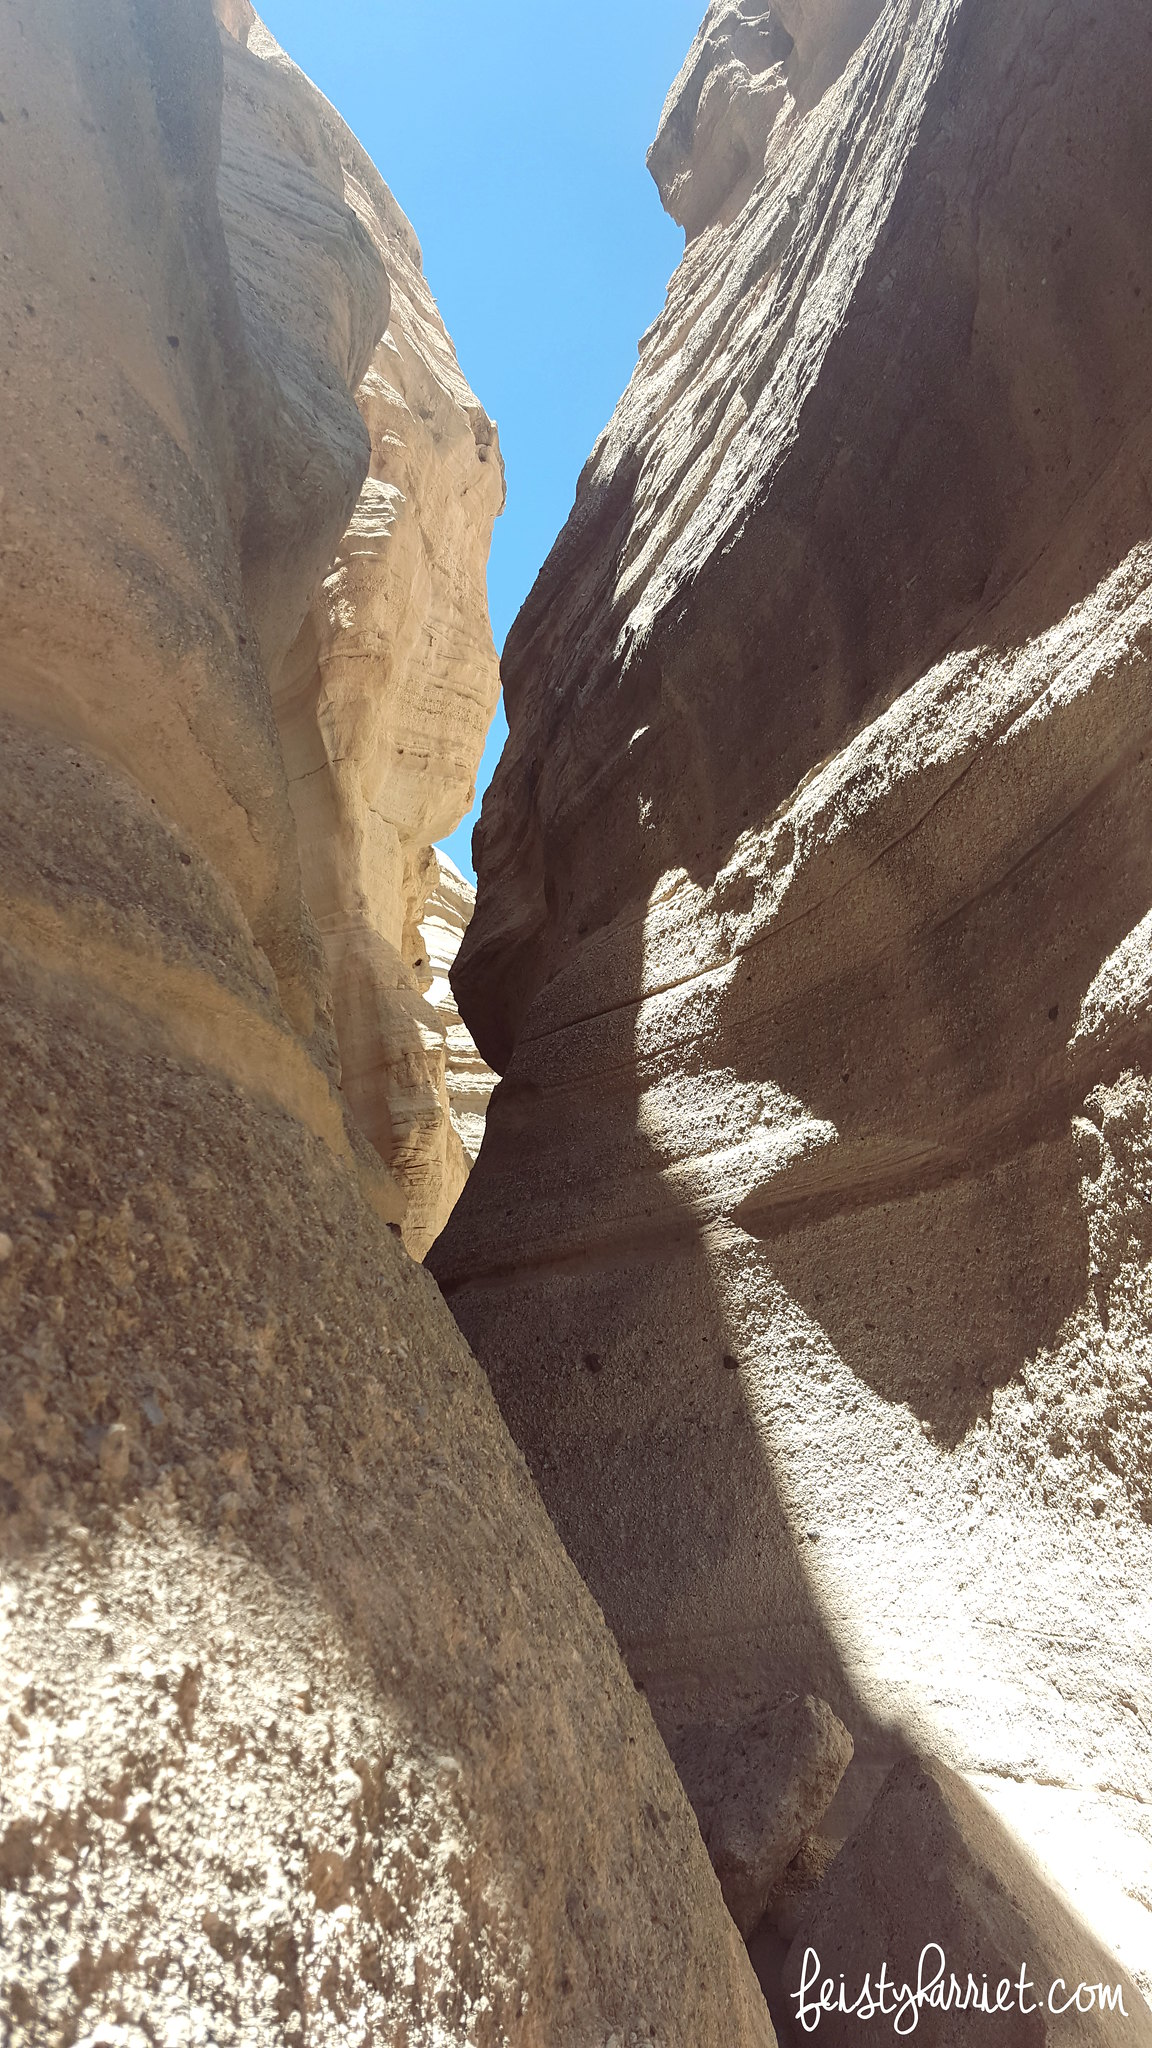 Kasha-Katuwe Tent Rocks NM_feistyharriet_July 2016 (7)